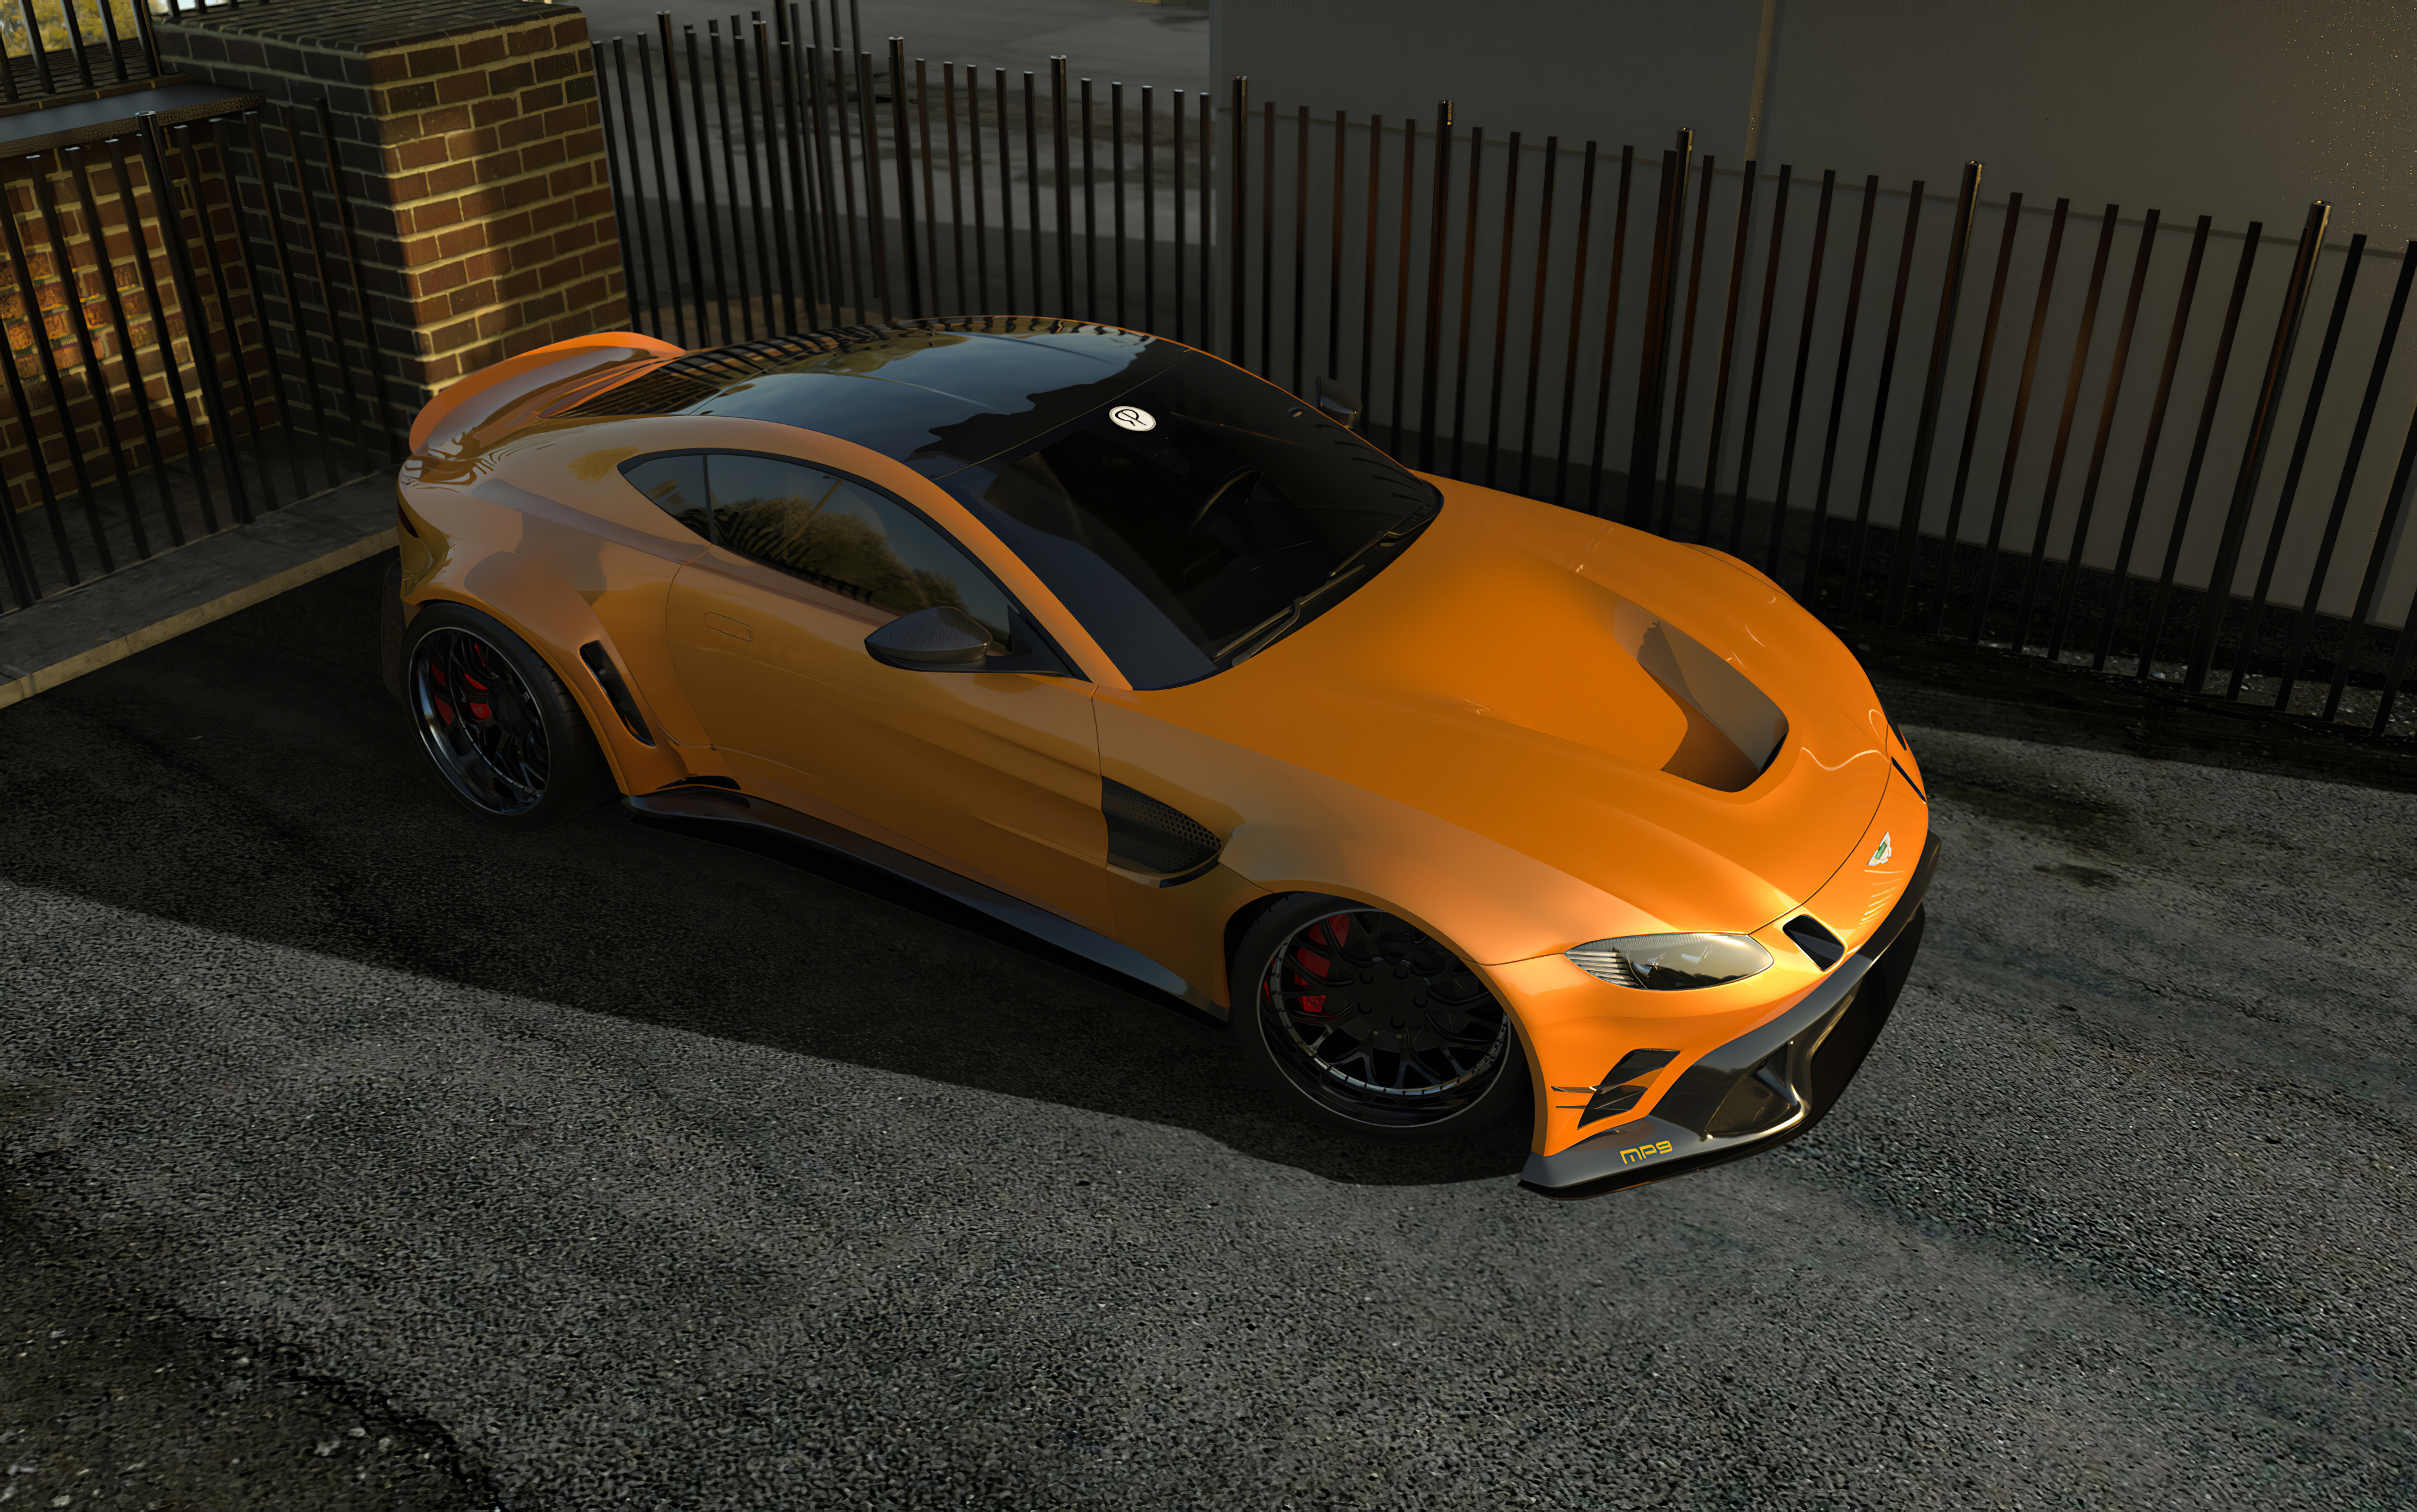 Aston Martin Vantage Mp6 Orange 4k Hd Cars 4k Wallpapers Images Backgrounds Photos And Pictures